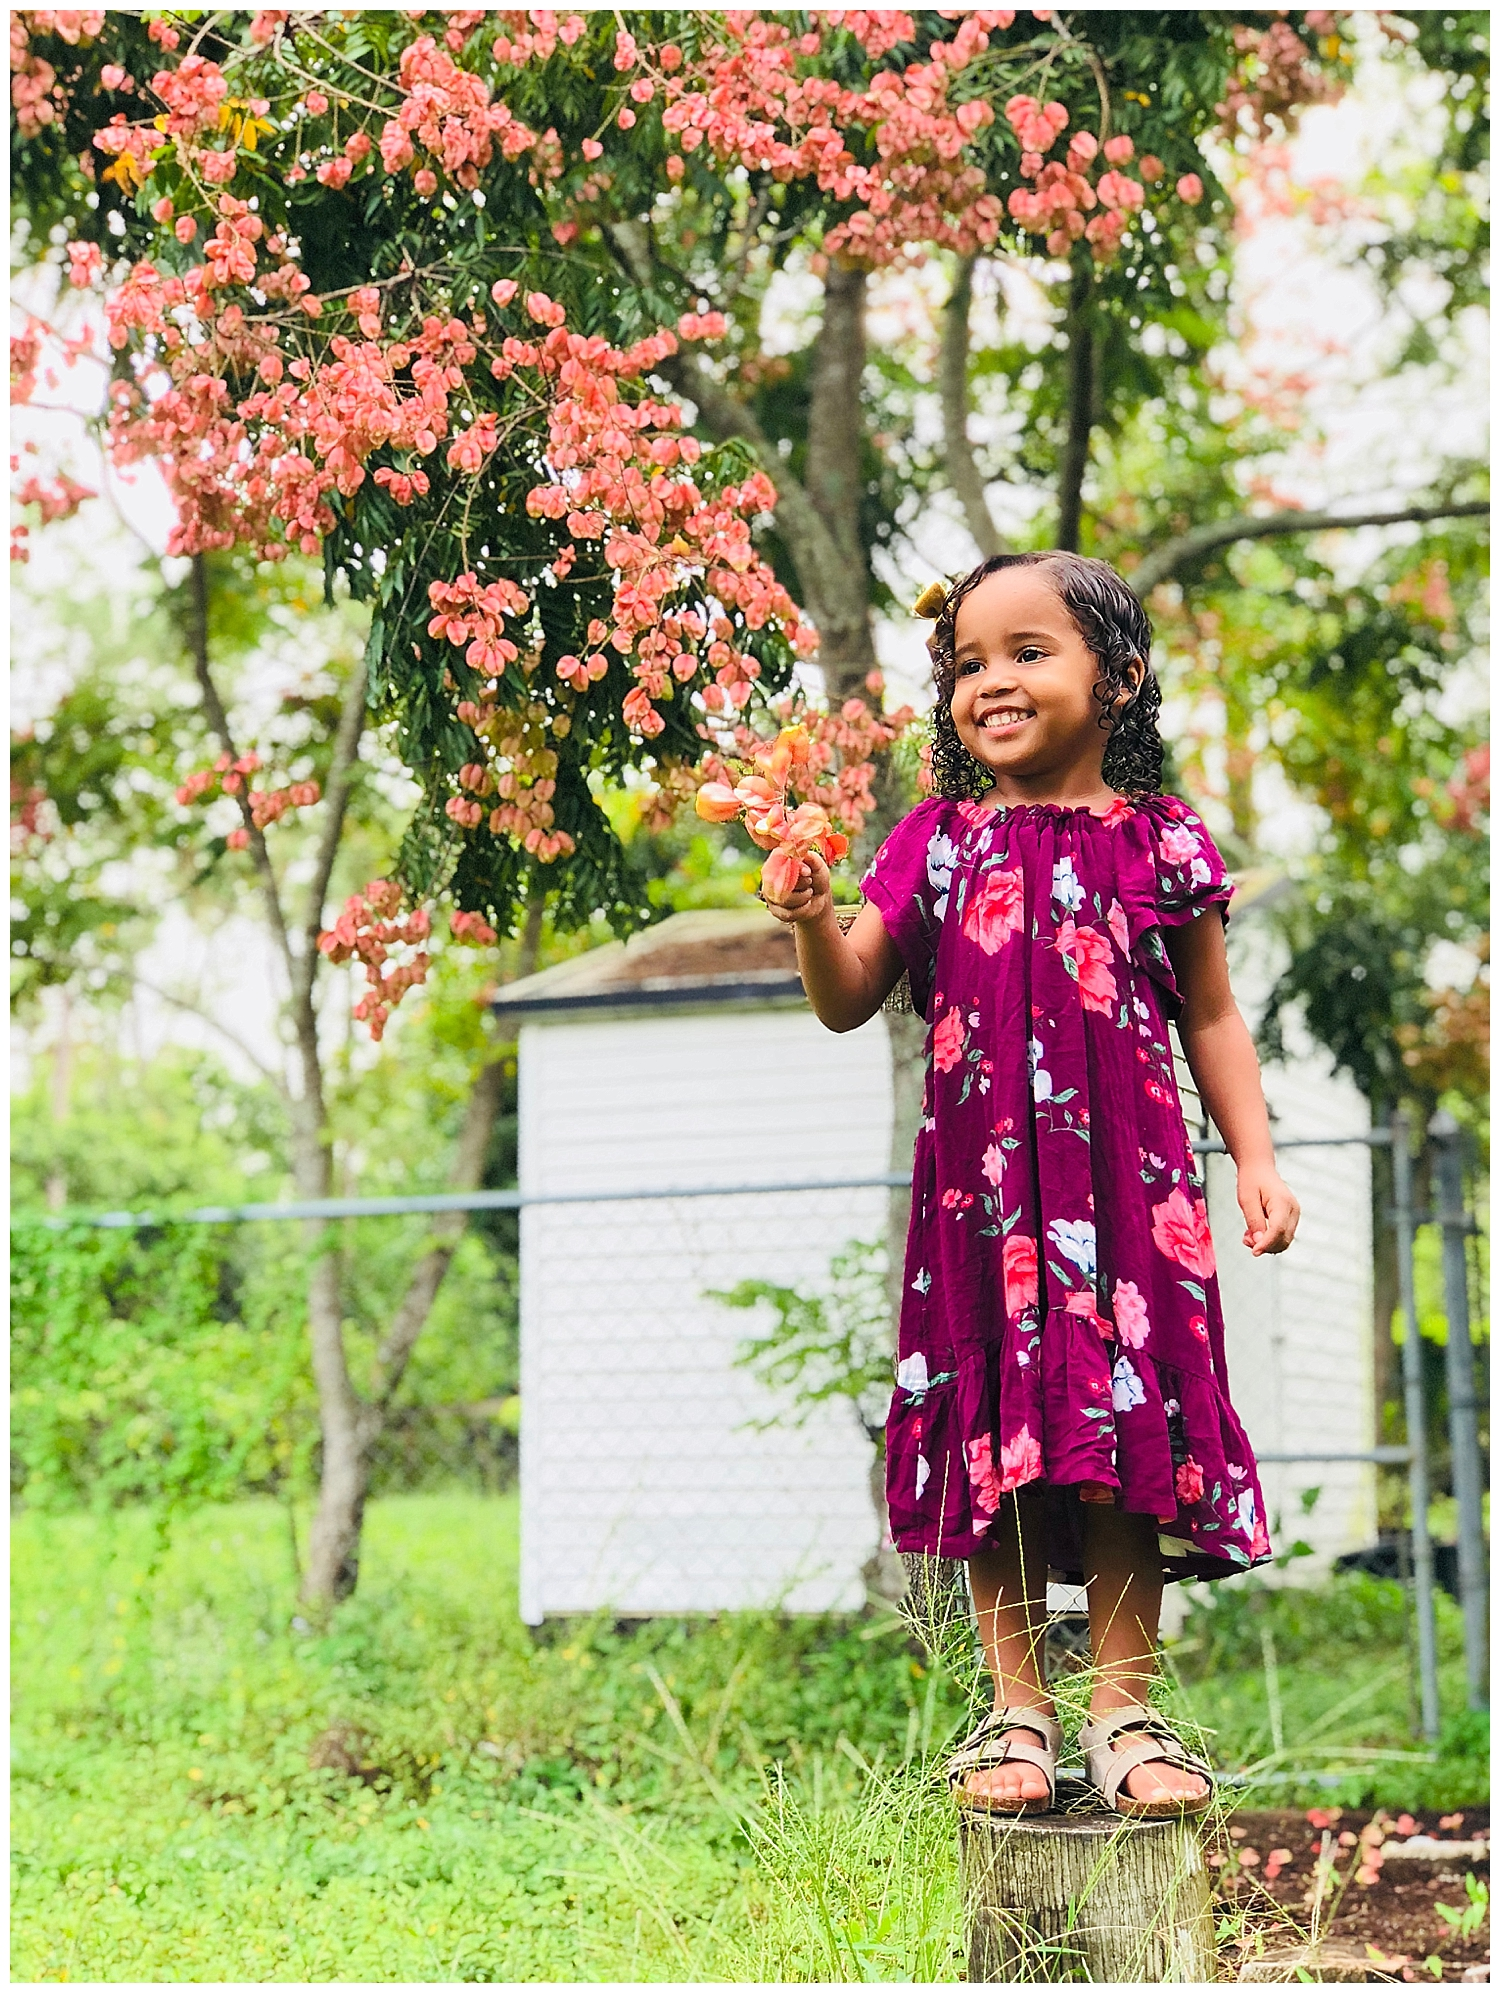 This is my 4-year-old daughter. I simply wanted a cute photo of her in front of this pretty tree with pink blossoms that's in our backyard.